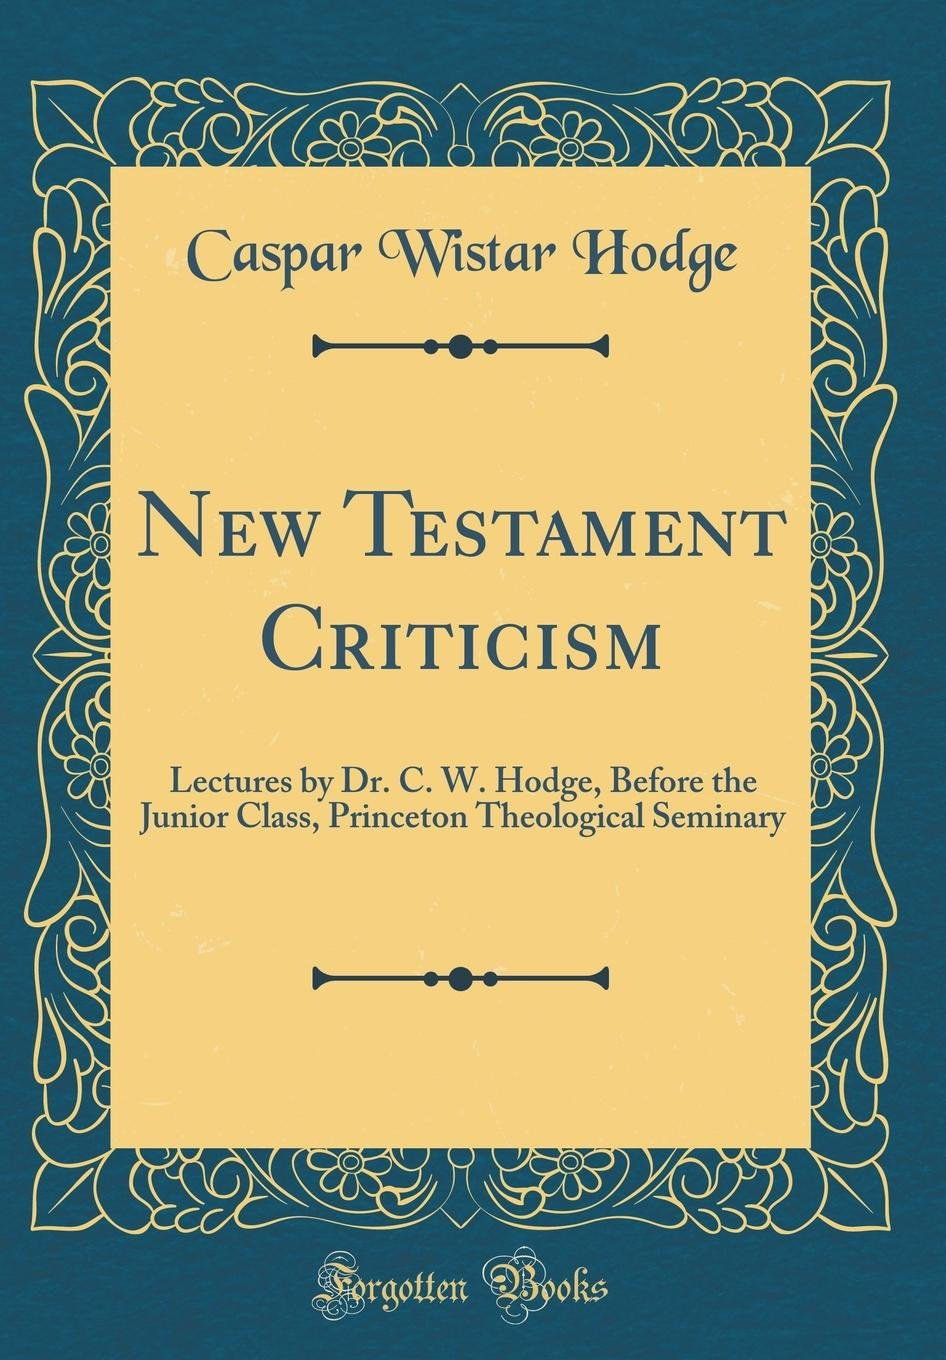 New Testament Criticism: Lectures by Dr. C. W. Hodge, Before the Junior Class, Princeton Theological Seminary (Classic Reprint) PDF